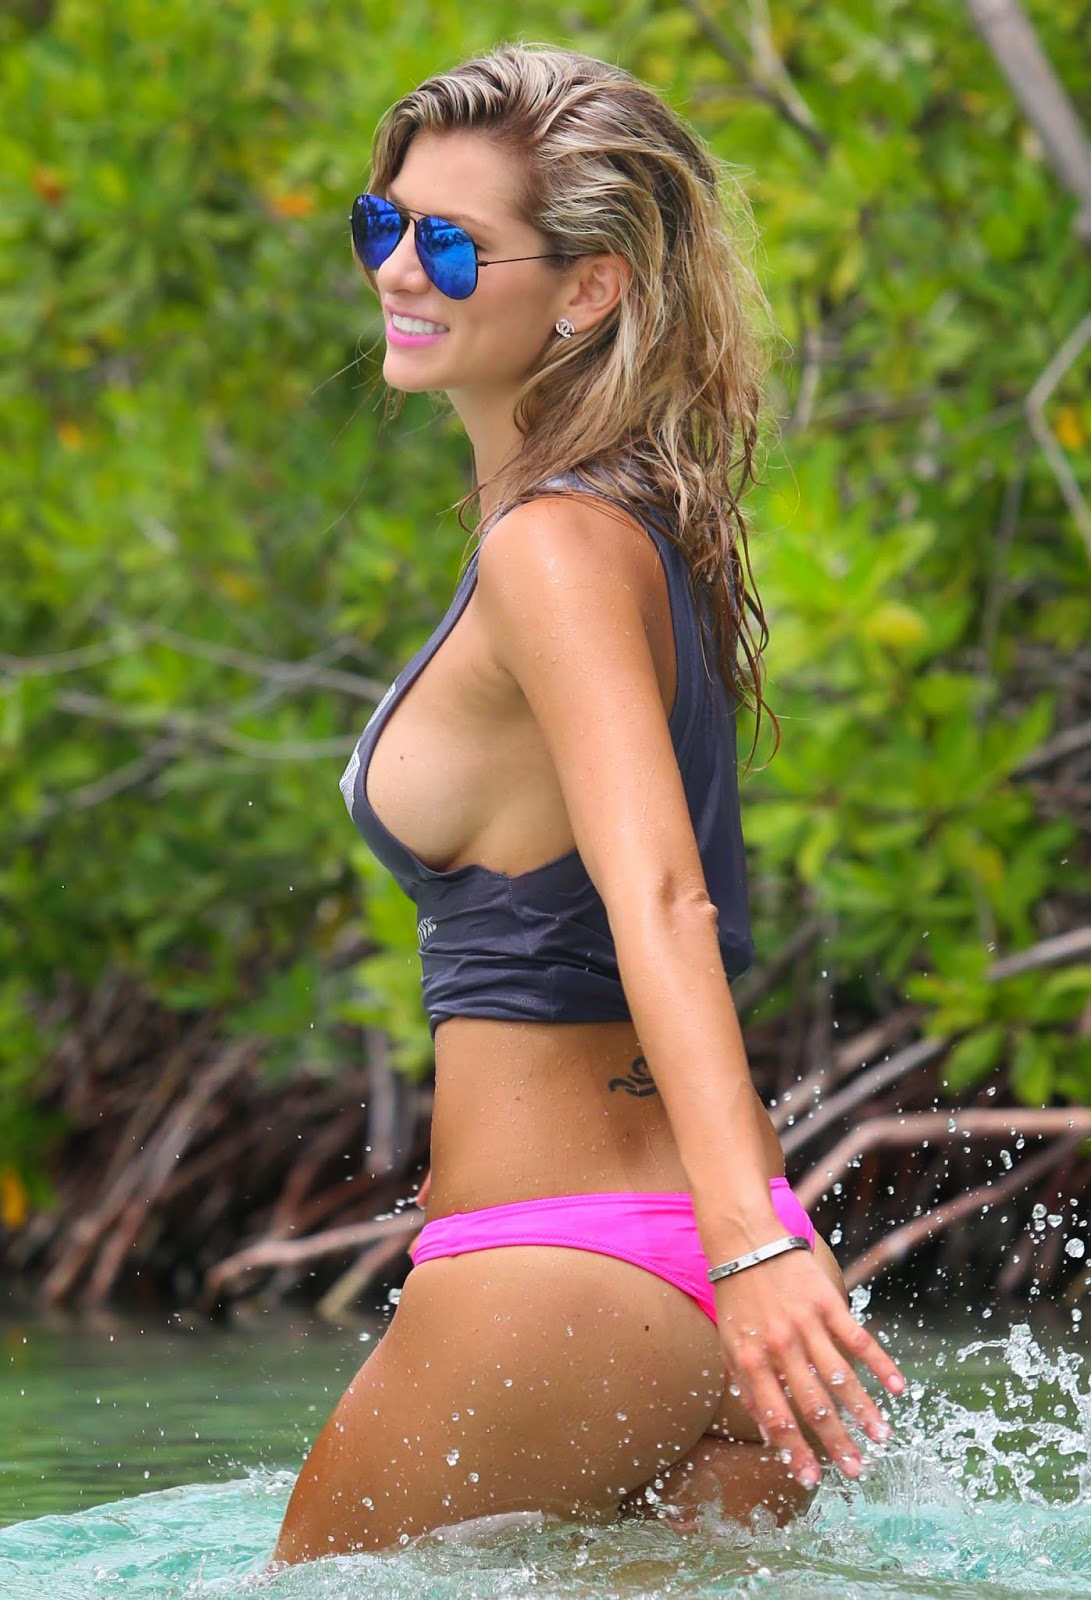 Yasmine Colt Very Hot HQ Photoshoot For 138 Water